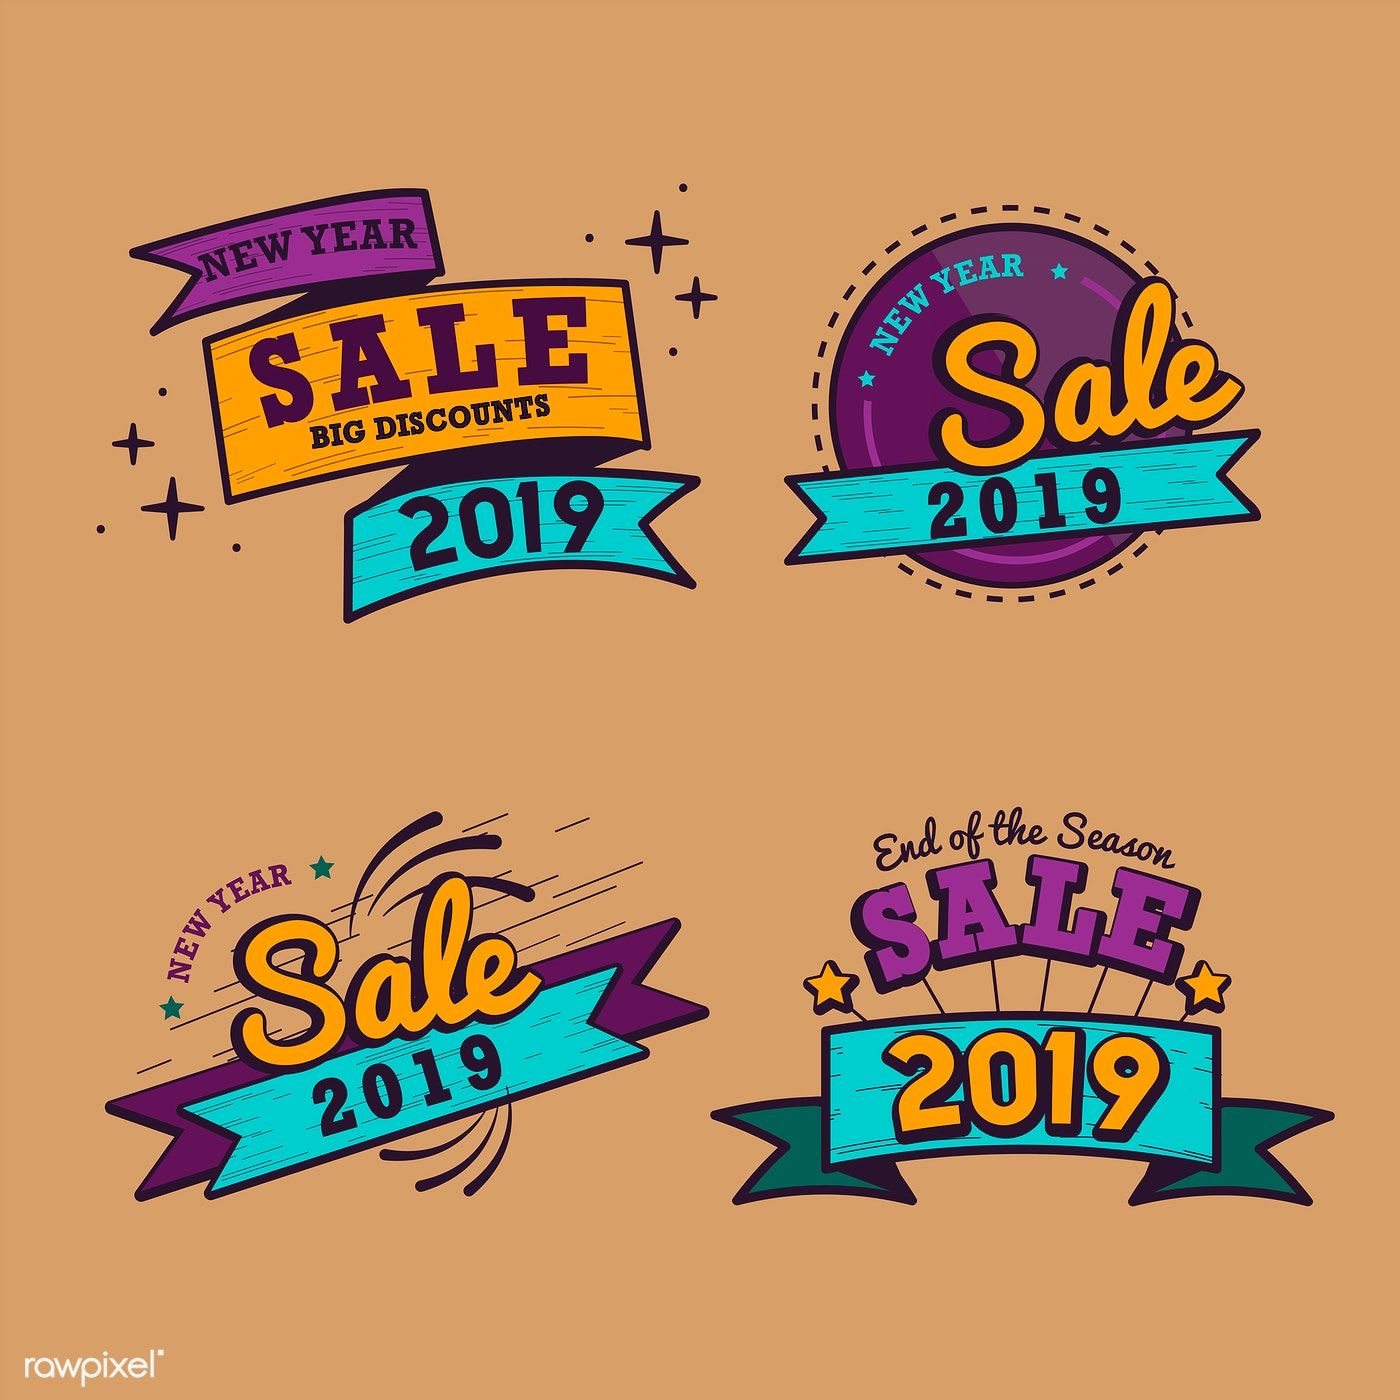 2019 new year sale badge vector set free image by